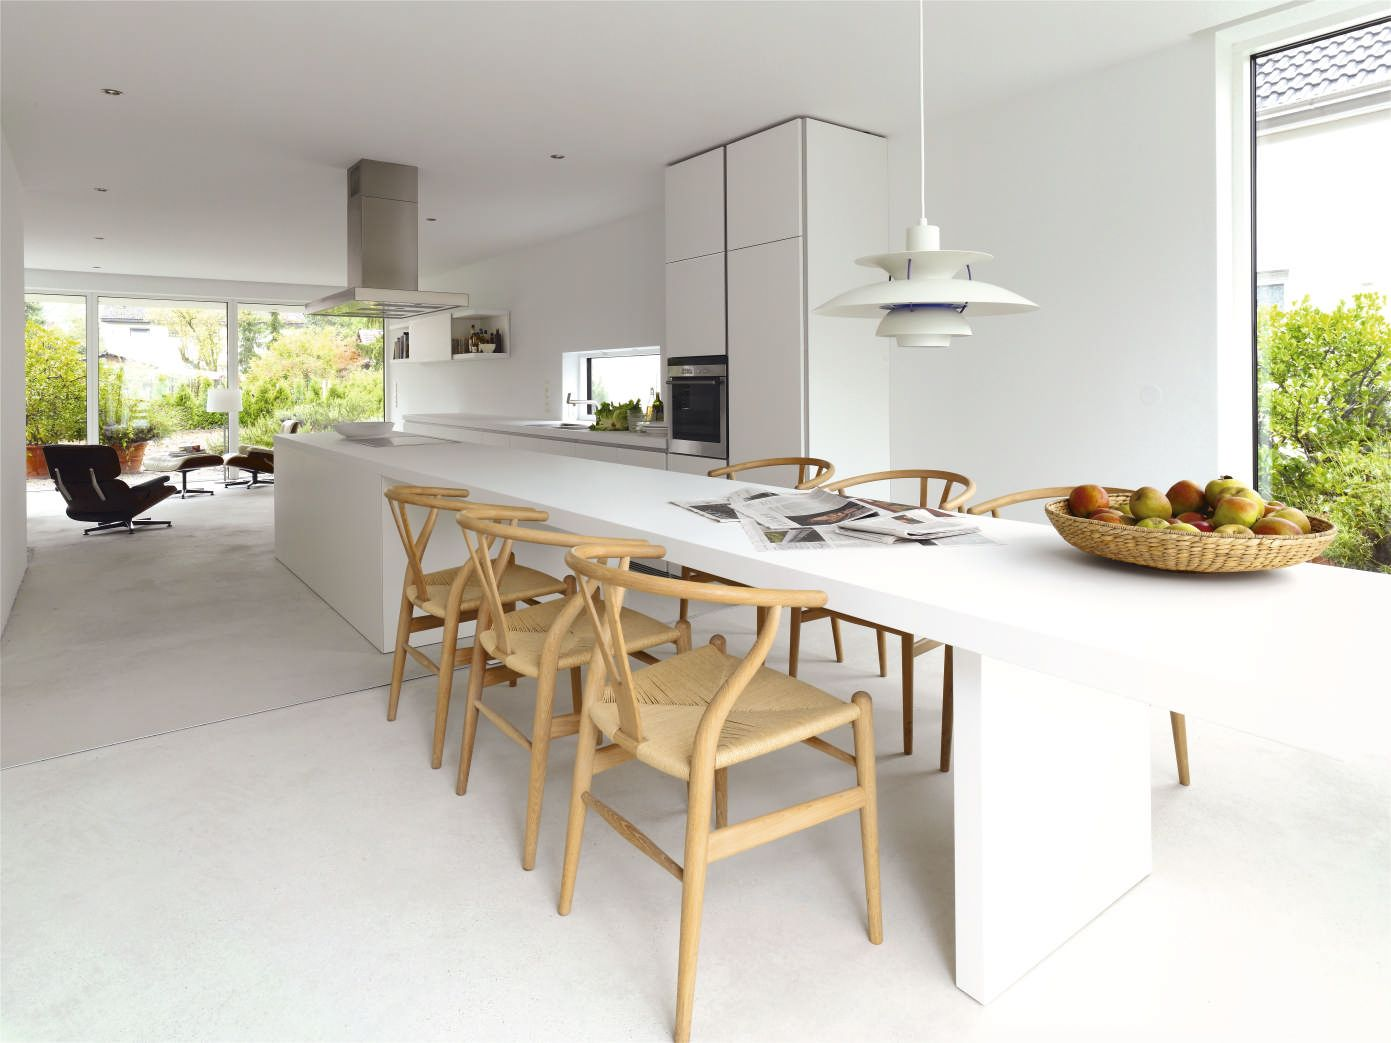 bulthaup b1 kitchen island in white has been extended into a table bulthaup b1 kitchen island in white has been extended into a table that seats 6